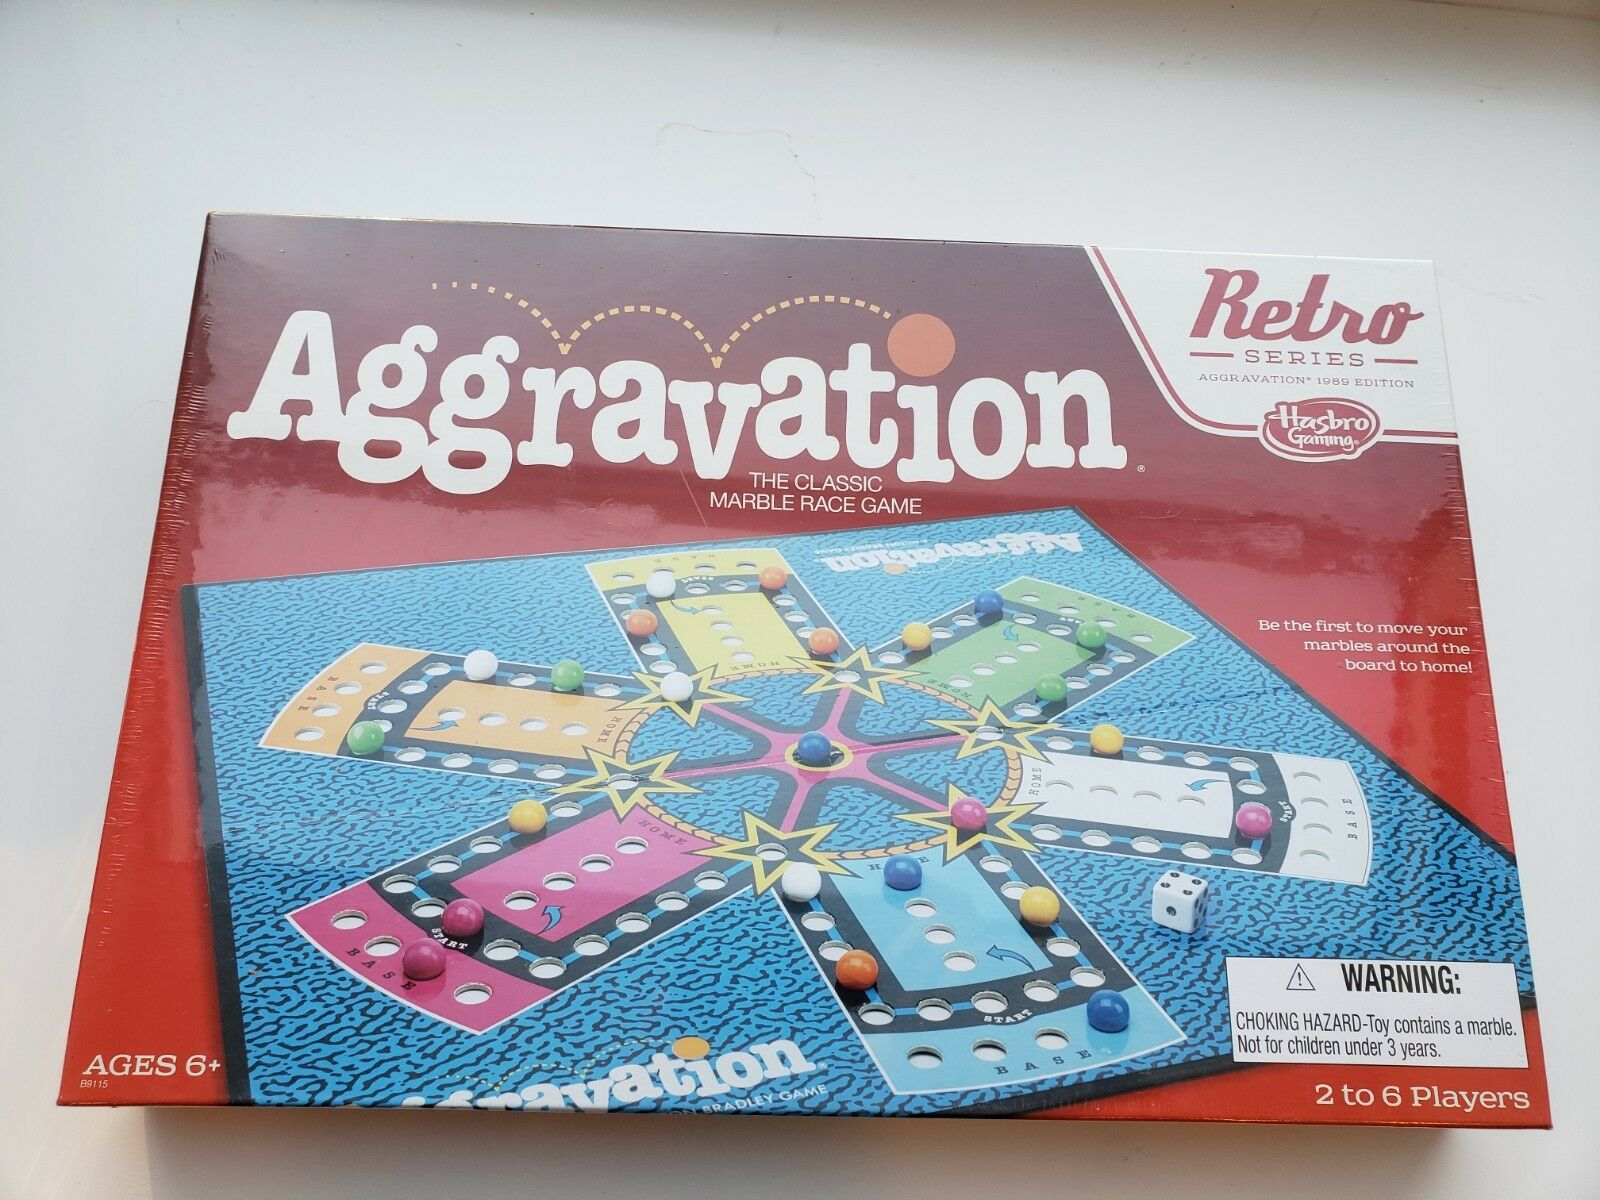 Hasbro Retro Series Aggravation Board Game 1989 Edition